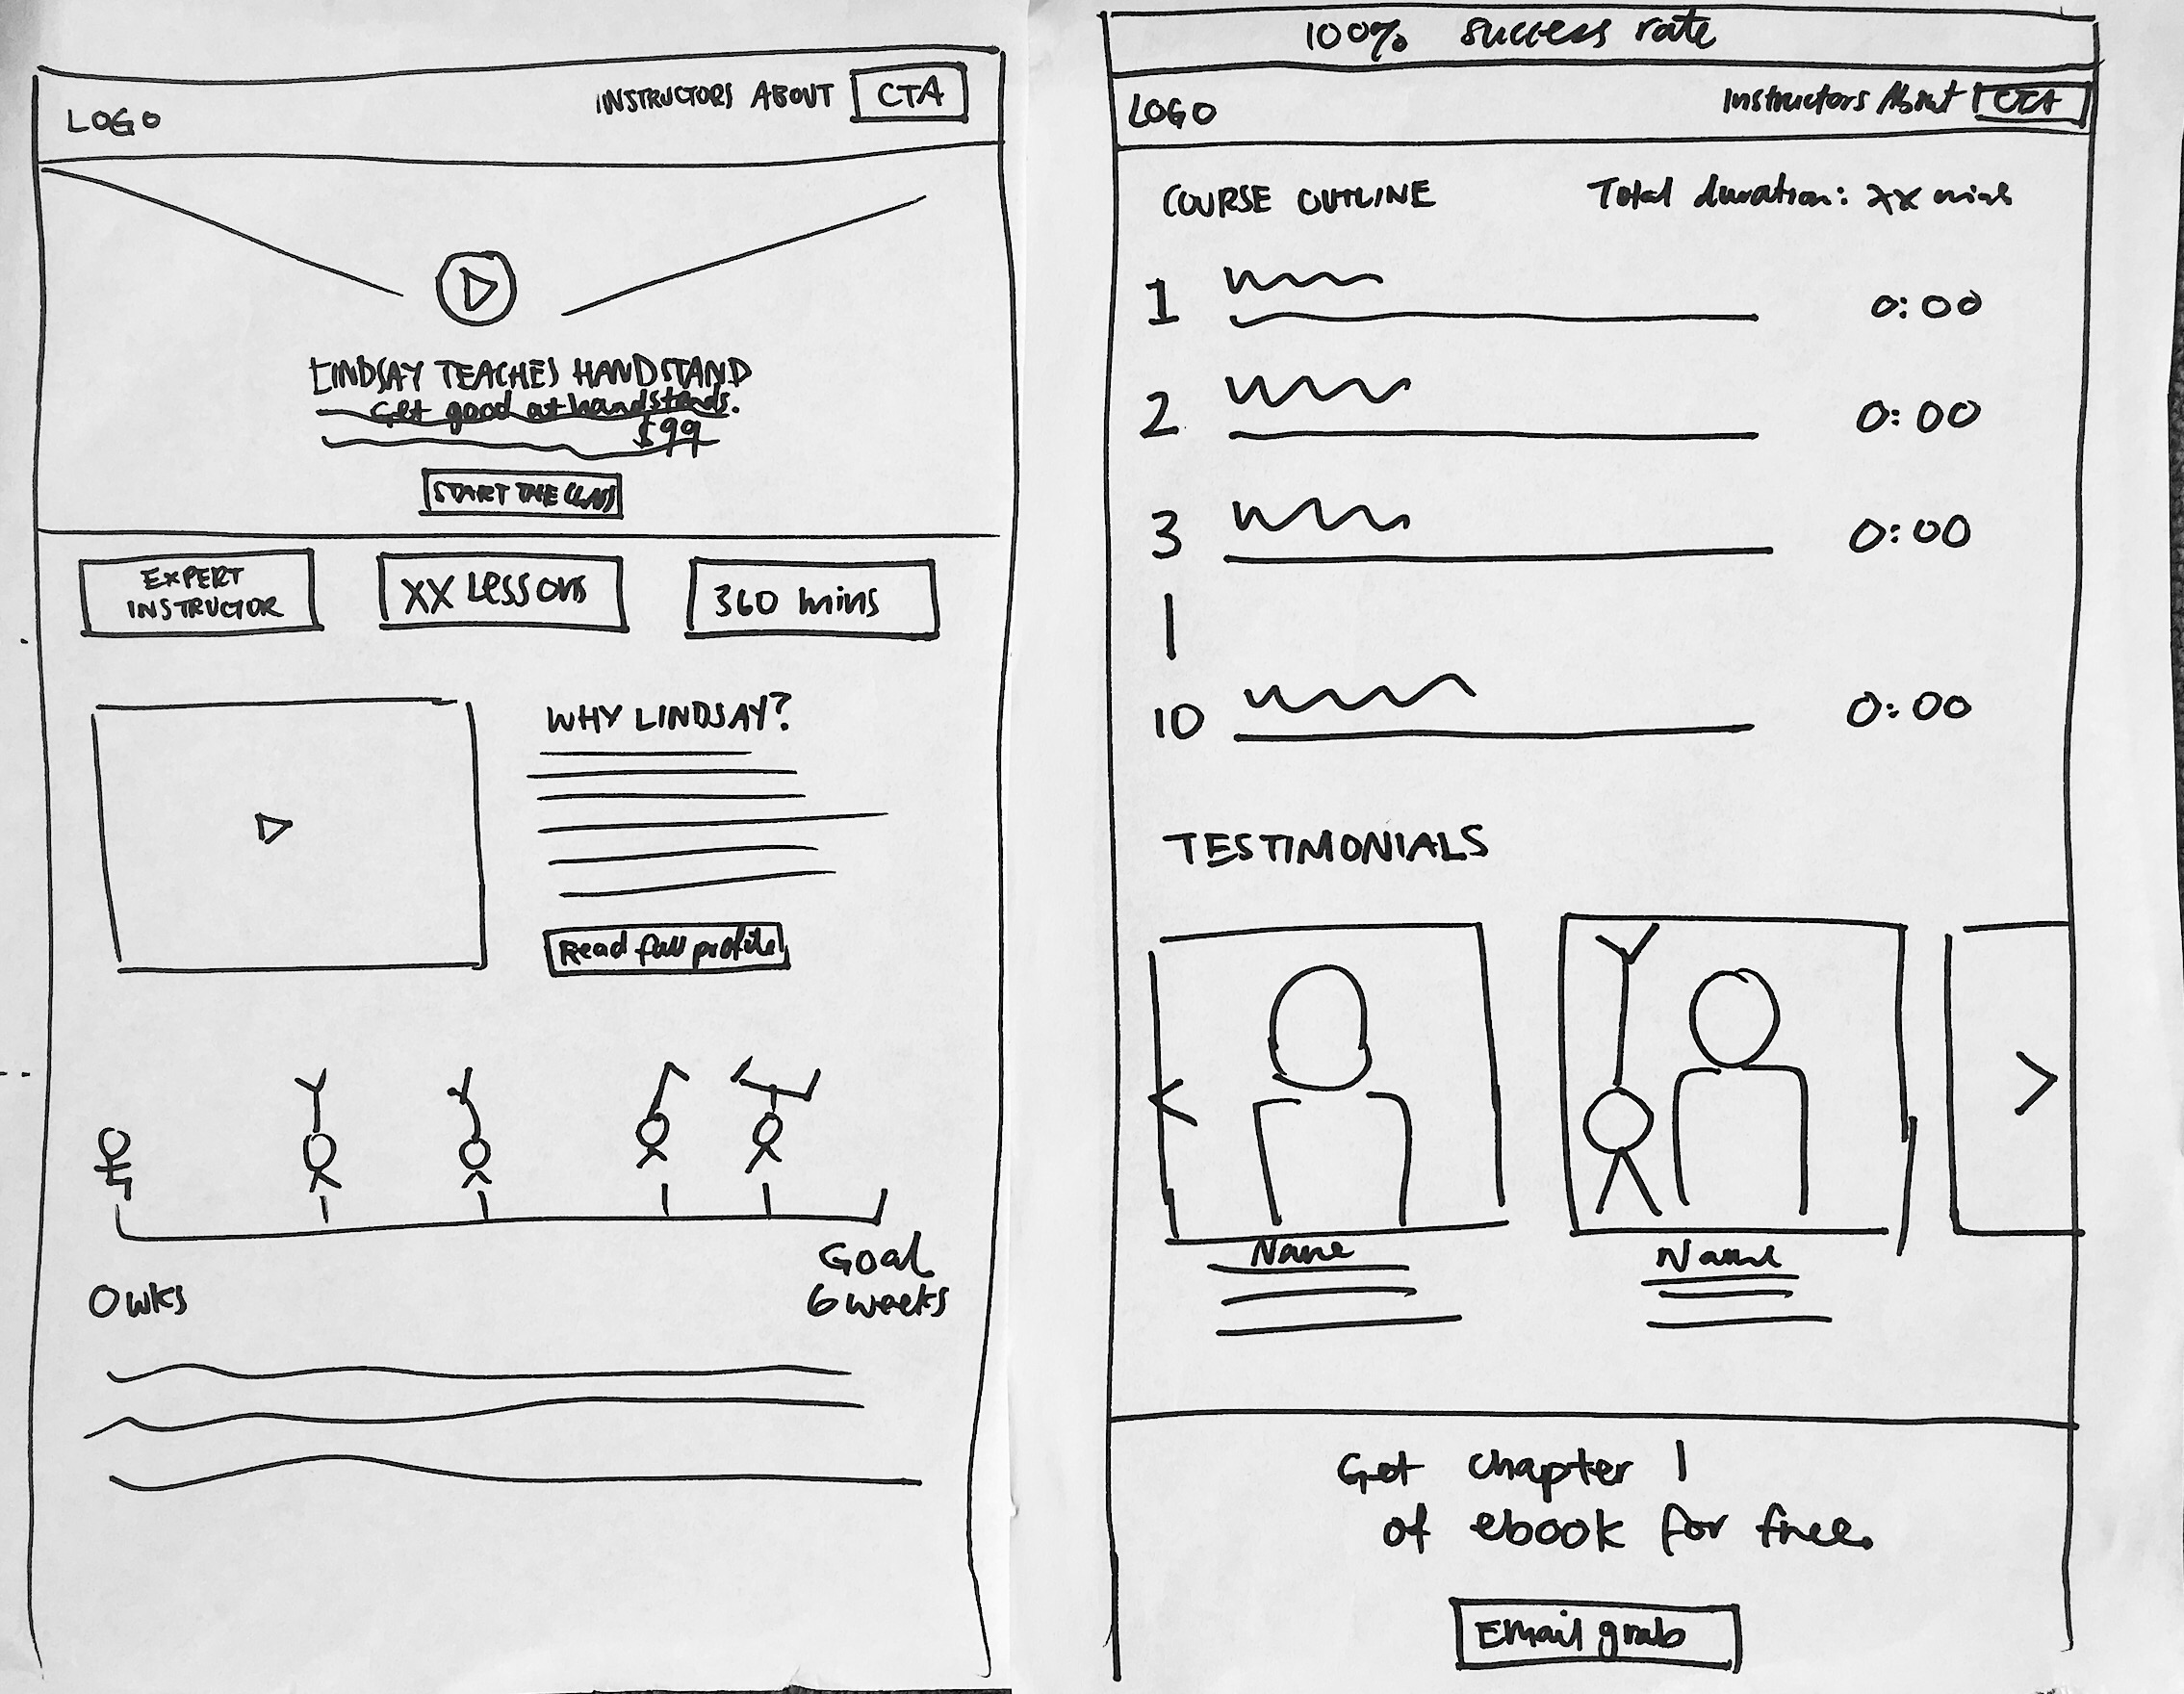 Paper prototype of landing page